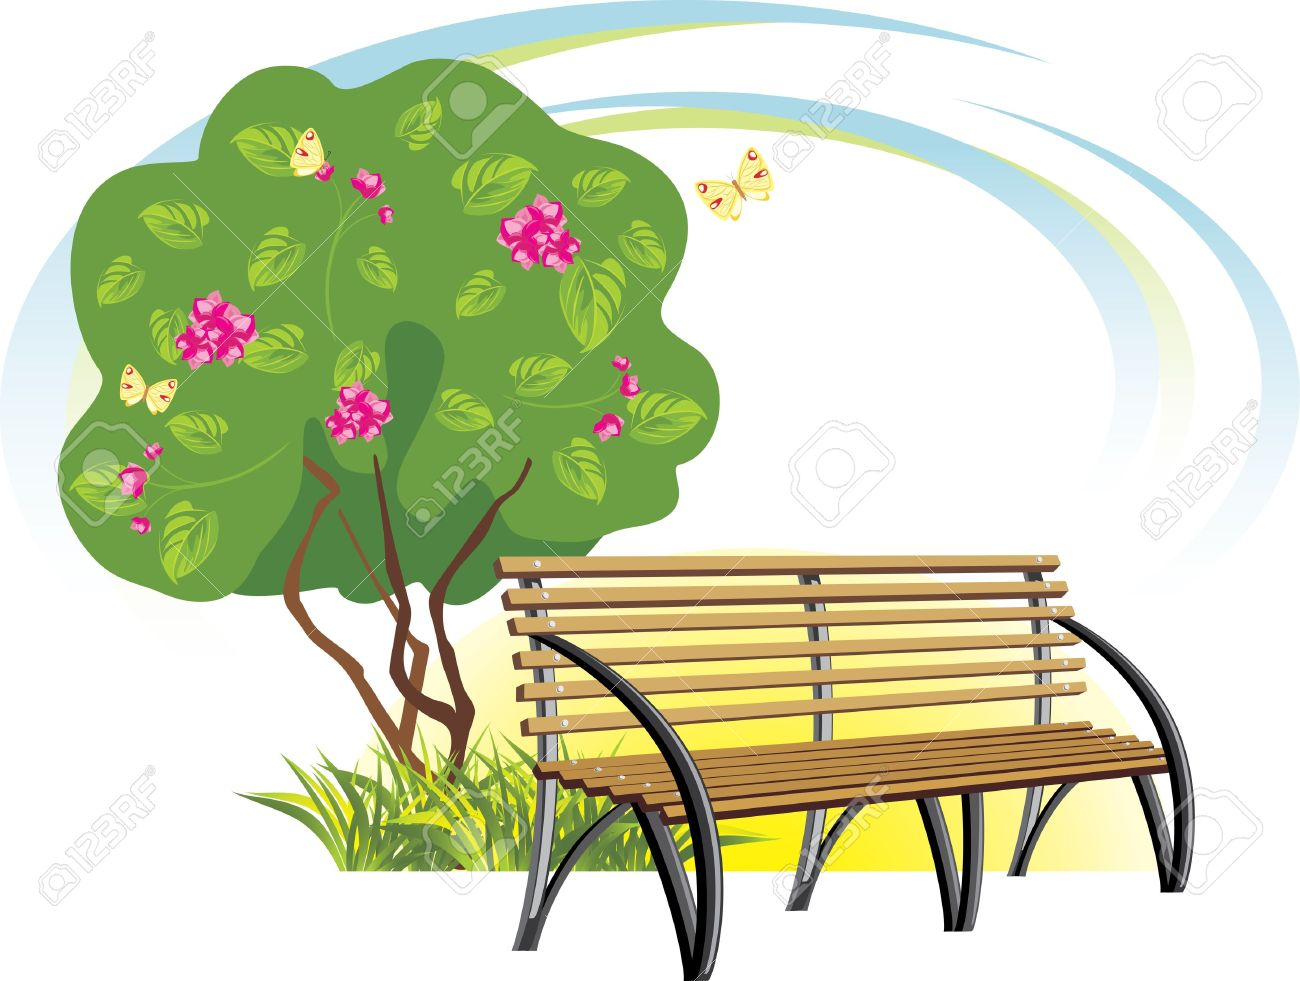 Park bench from behind clipart png freeuse download 88+ Park Bench Clipart | ClipartLook png freeuse download